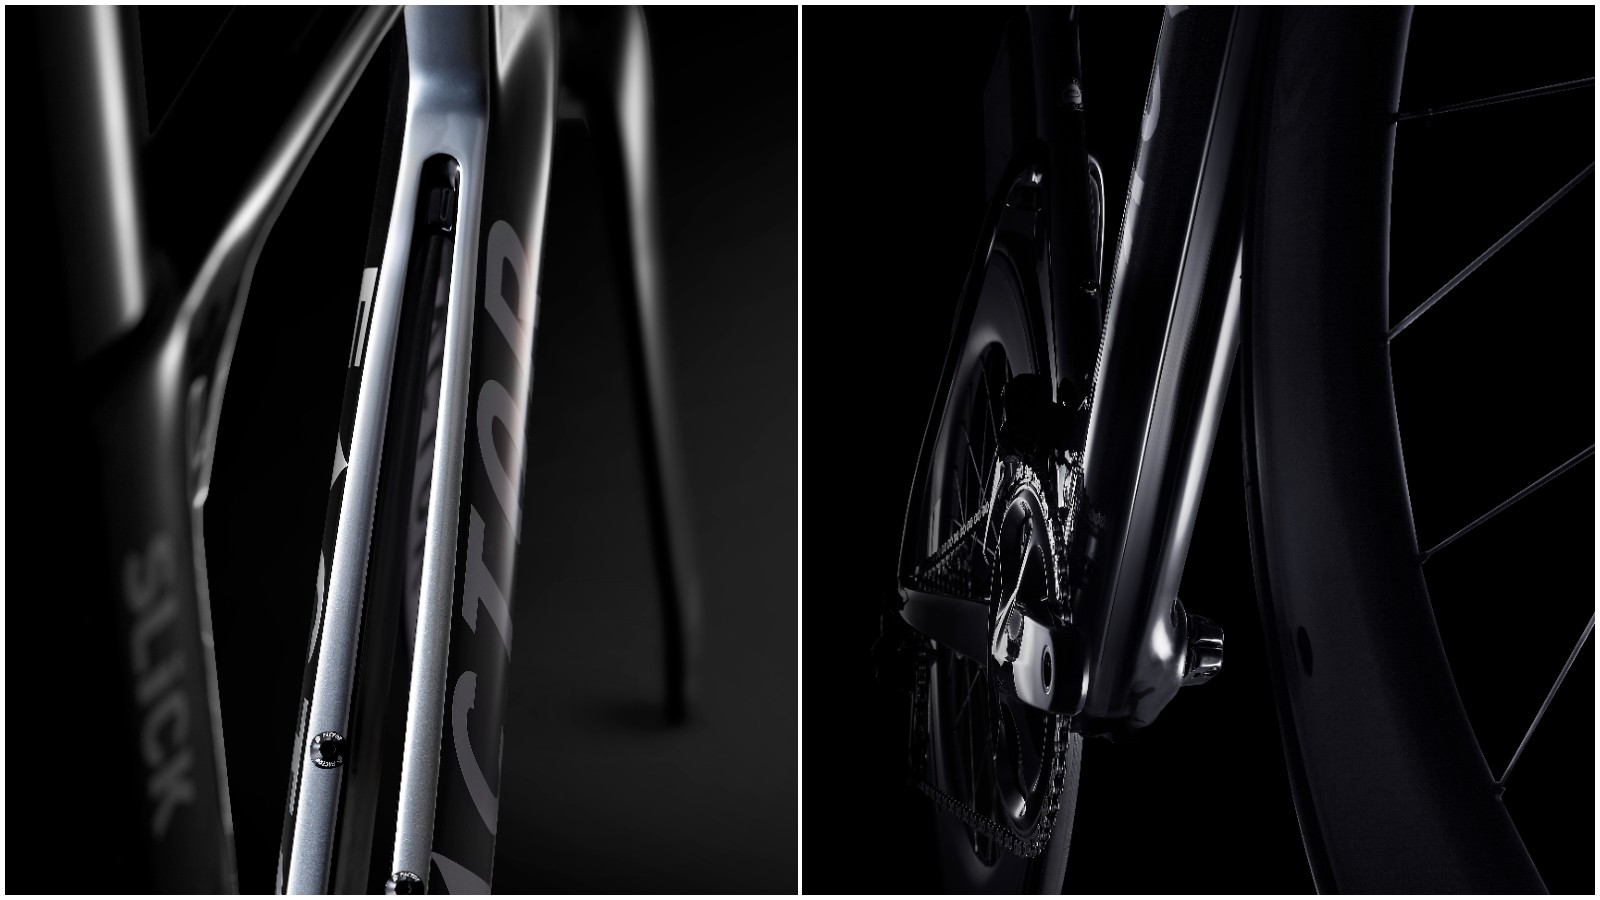 The Slick's most distinctive feature is this radical split down tube